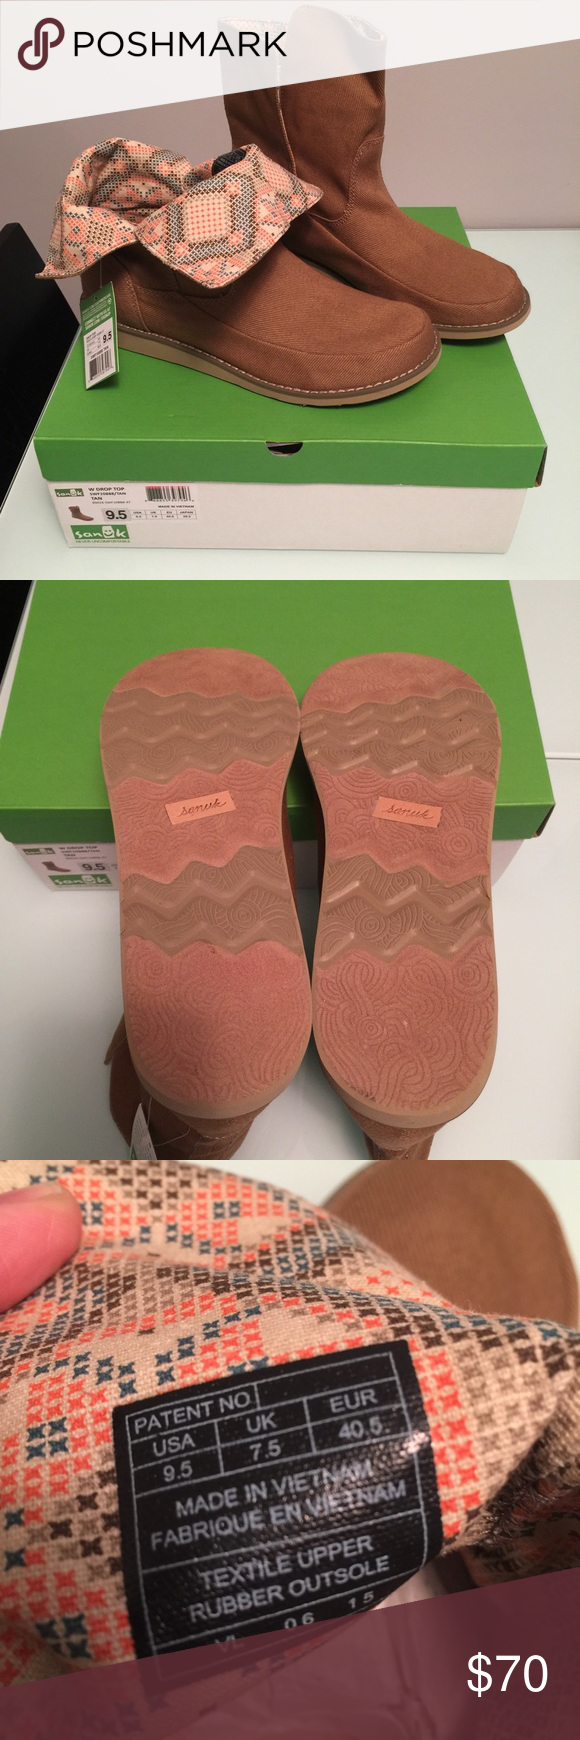 """FINAL PRICE‼️ Sanuk Drop Top Boots Brand New in Box! *PRICE IS FIRM (Reduced from $65)  - Slip On style with Canvas construction - Fold over printed cuff  Approximate Measurements: 5"""" Shaft Height 11"""" Opening Circumference 0.75"""" Heel Sanuk Shoes"""